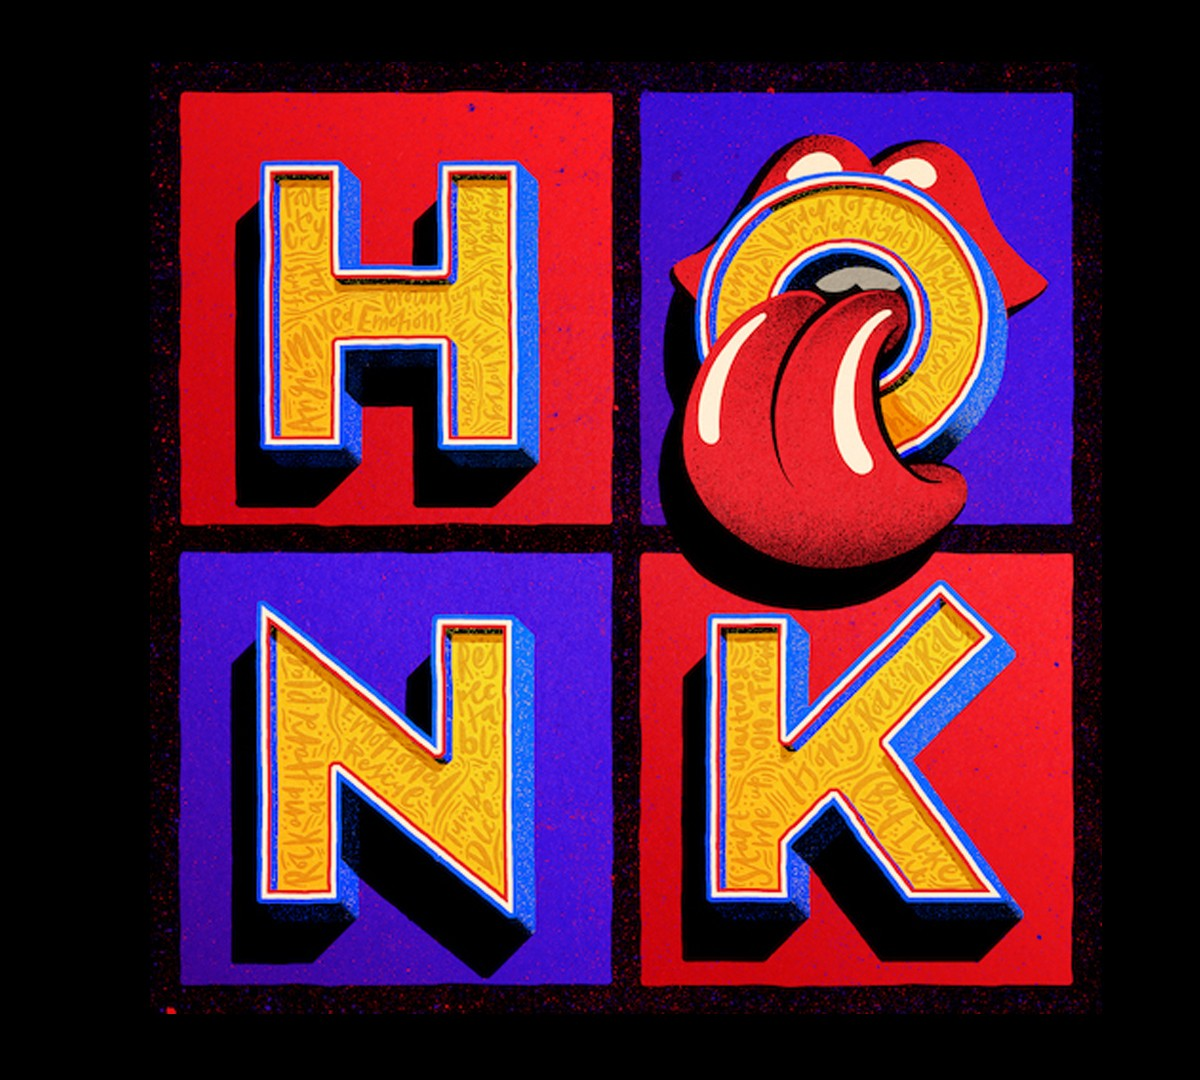 The Rolling Stones Announce The Release of Brand-New Best of Compilation Album, Honk